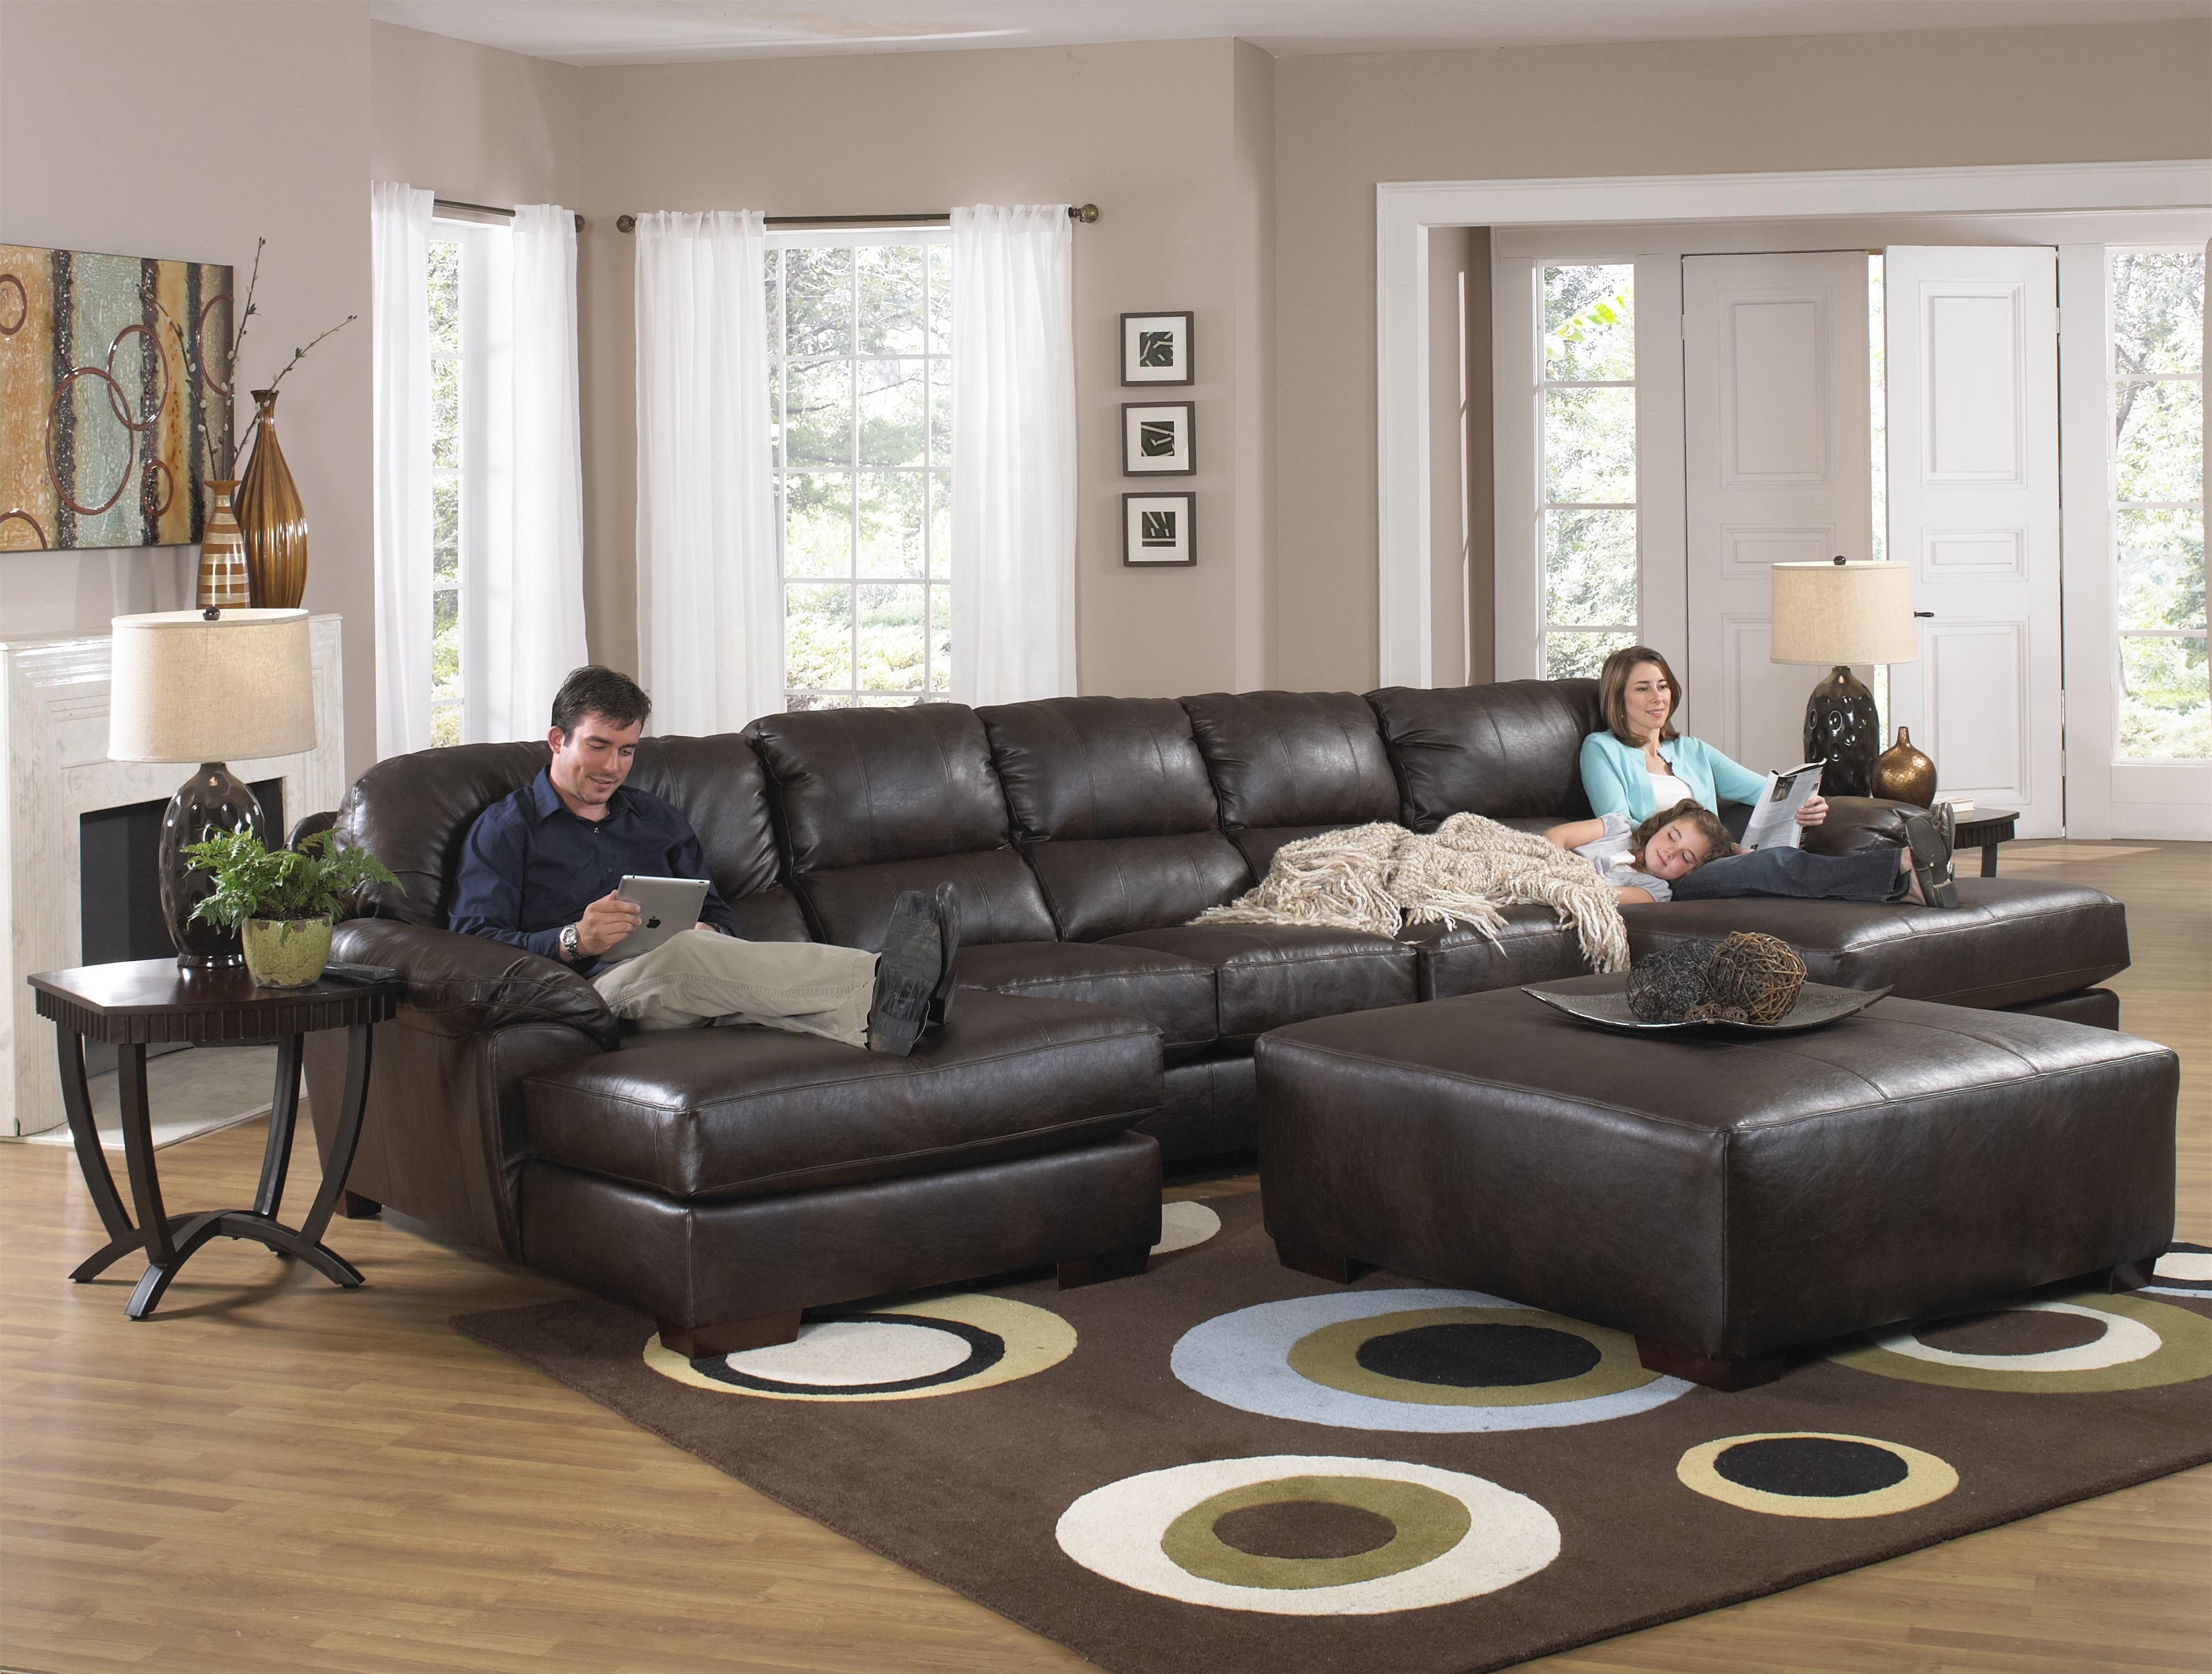 Sofas With Chaise And Ottoman Regarding Latest Sofa : Beautiful Large Sectional Sofa With Chaise L Shaped Cream (View 15 of 20)